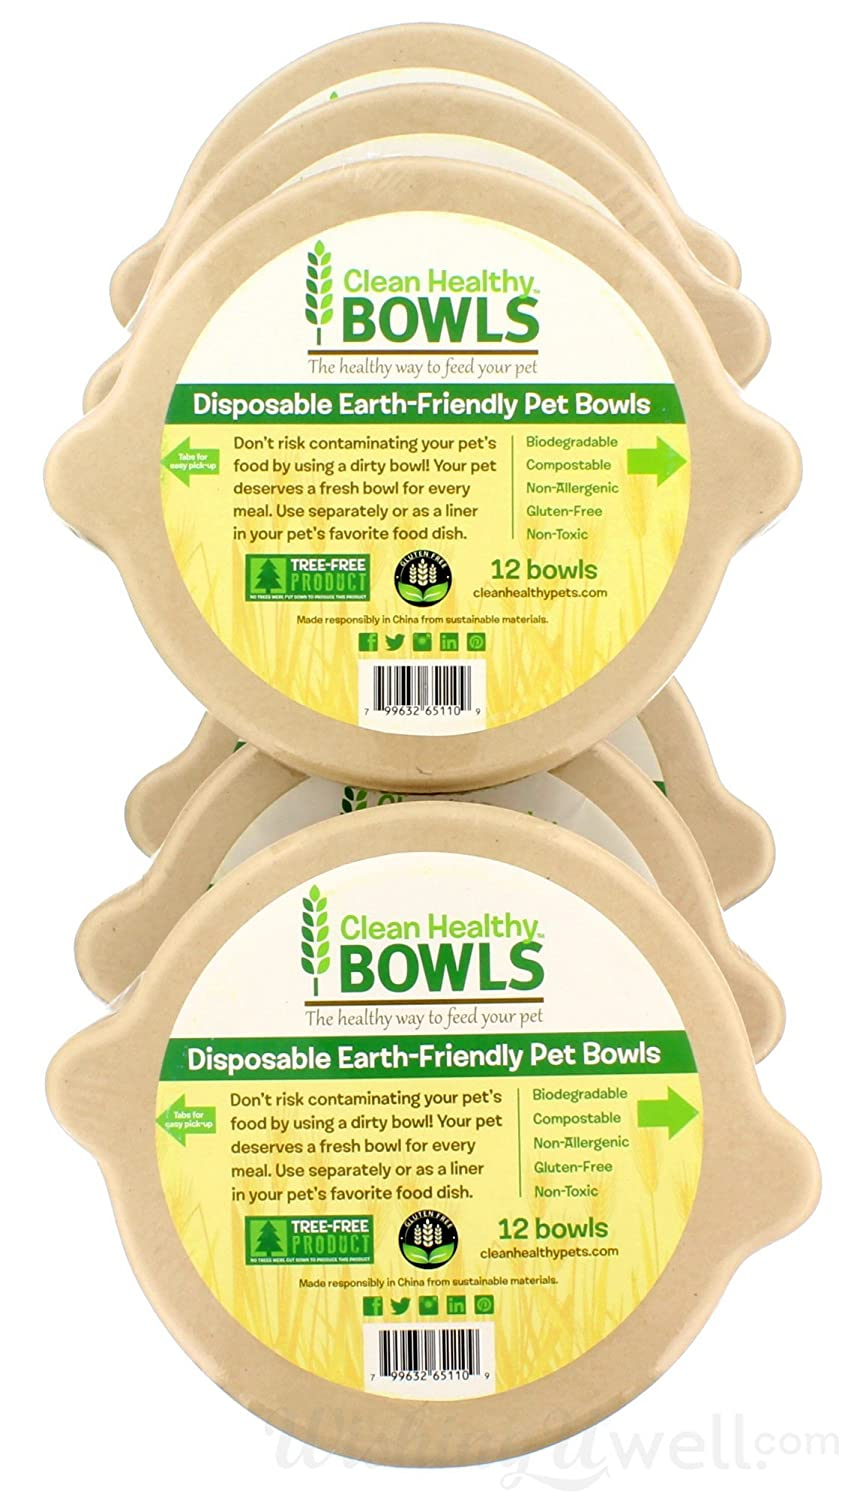 Clean Healthy Bowls Disposable Earth-Friendly Pet Bowls, case of 72 bowls